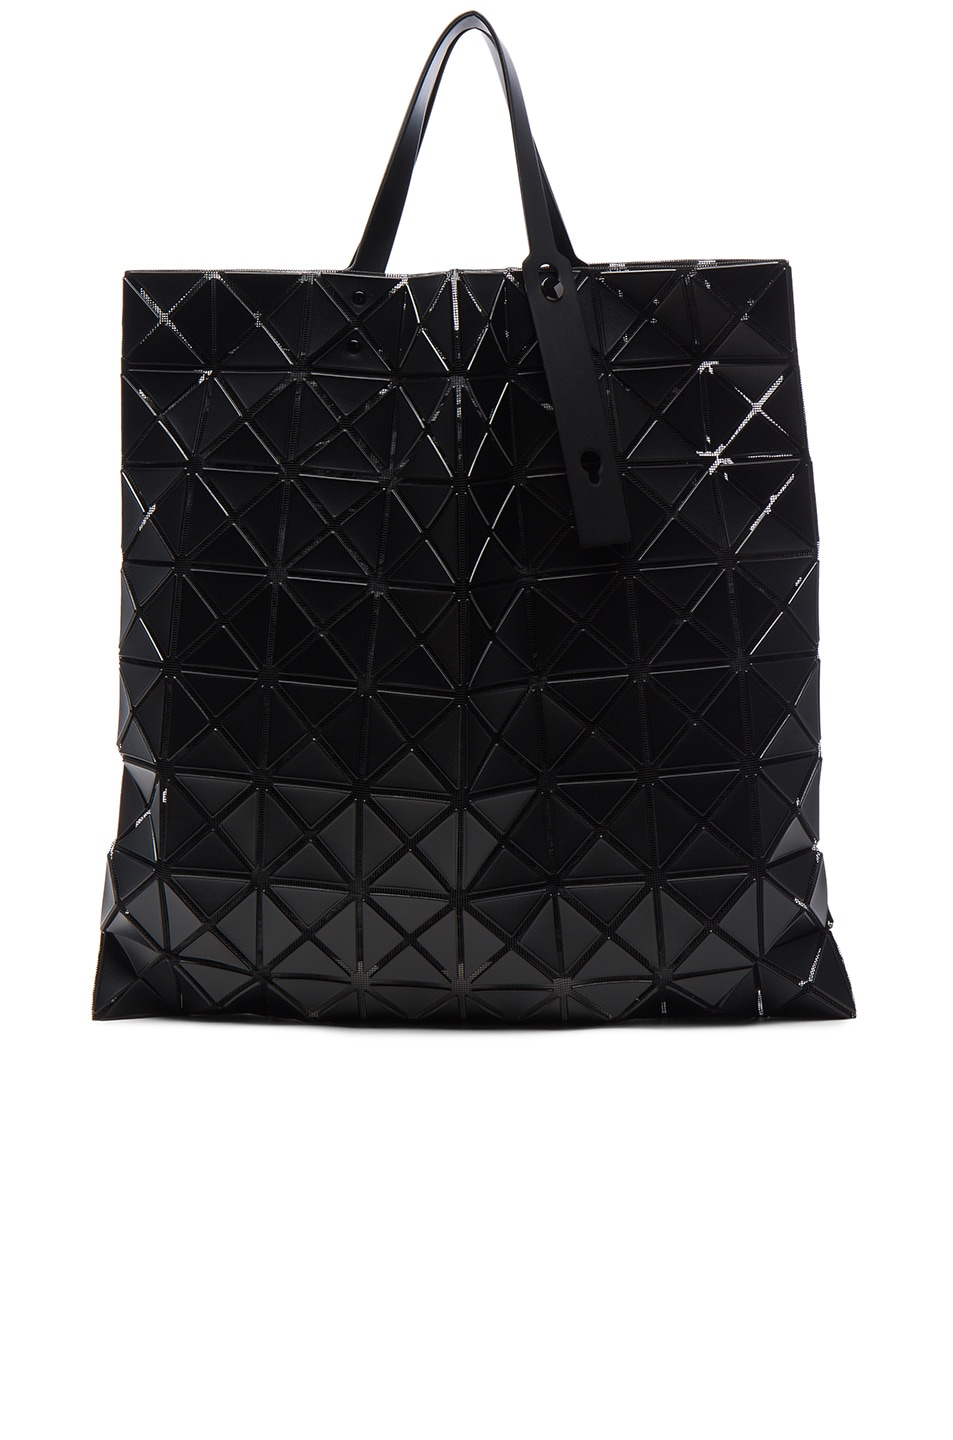 Image 1 of Issey Miyake Bao Bao Lucent Pro Matte Tote in Matte Black d199954d4d10a